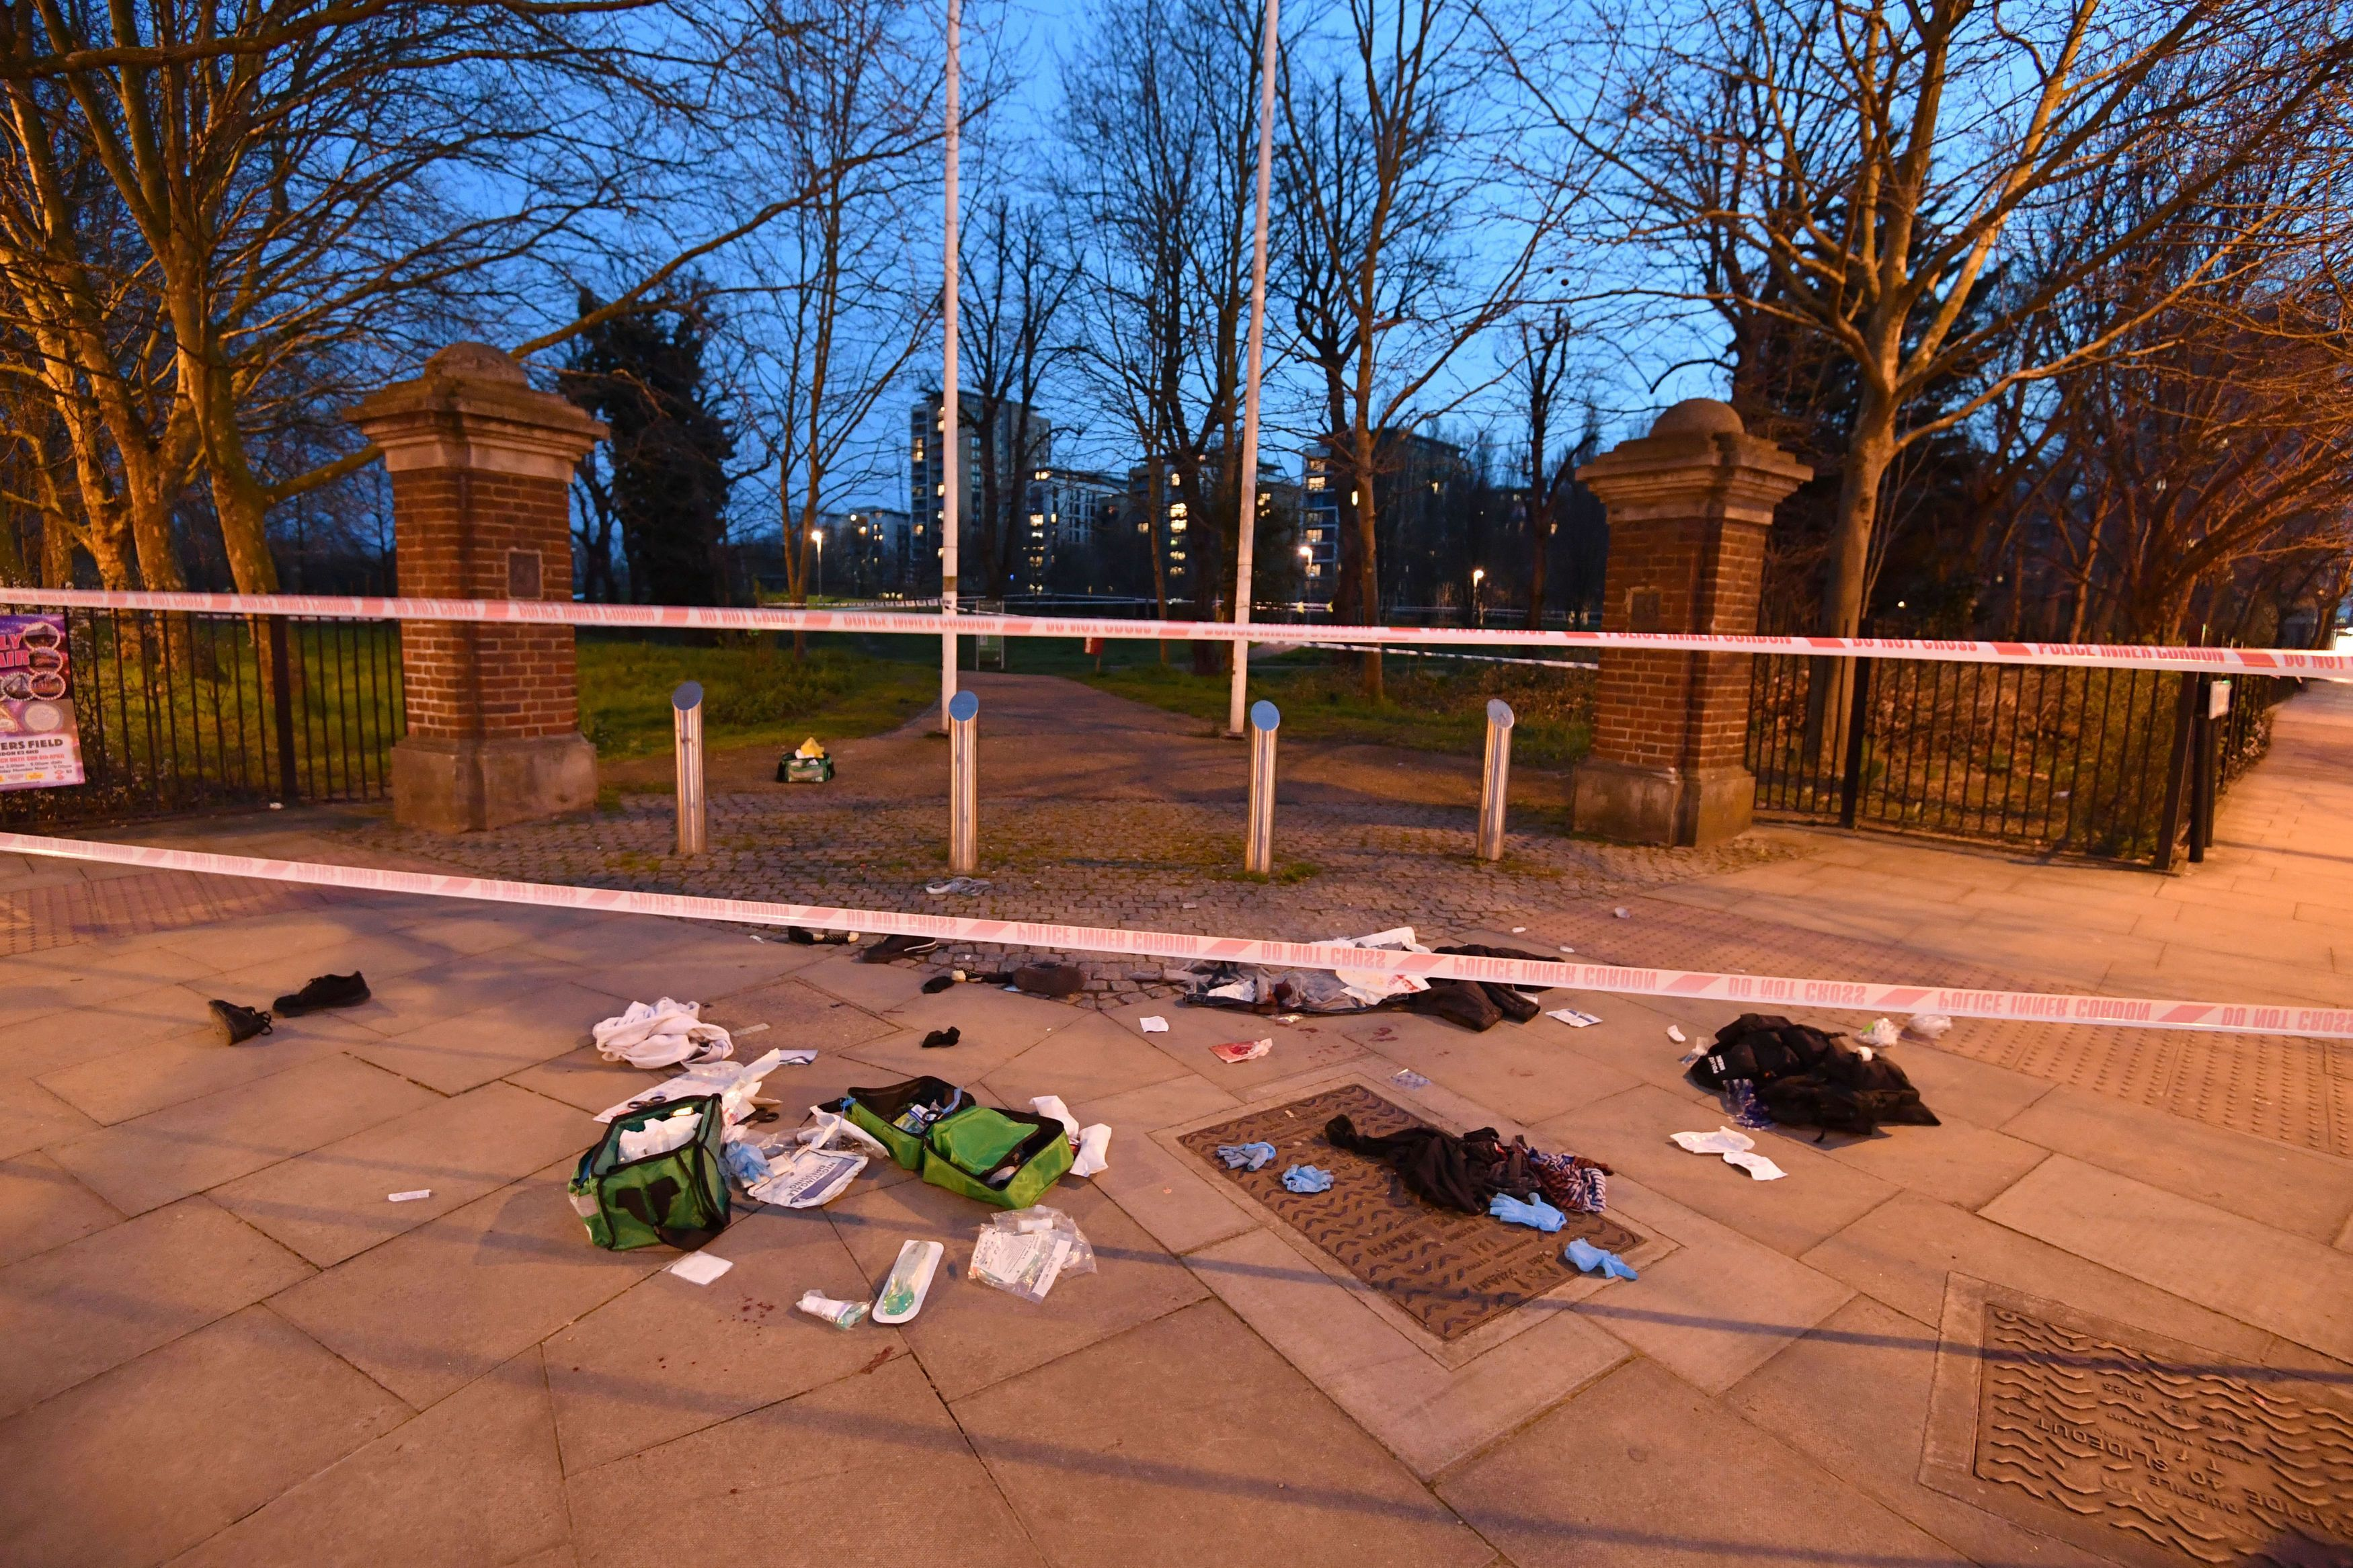 Five Teenagers Stabbed In Barely An Hour As Spate Of Violence Shocks